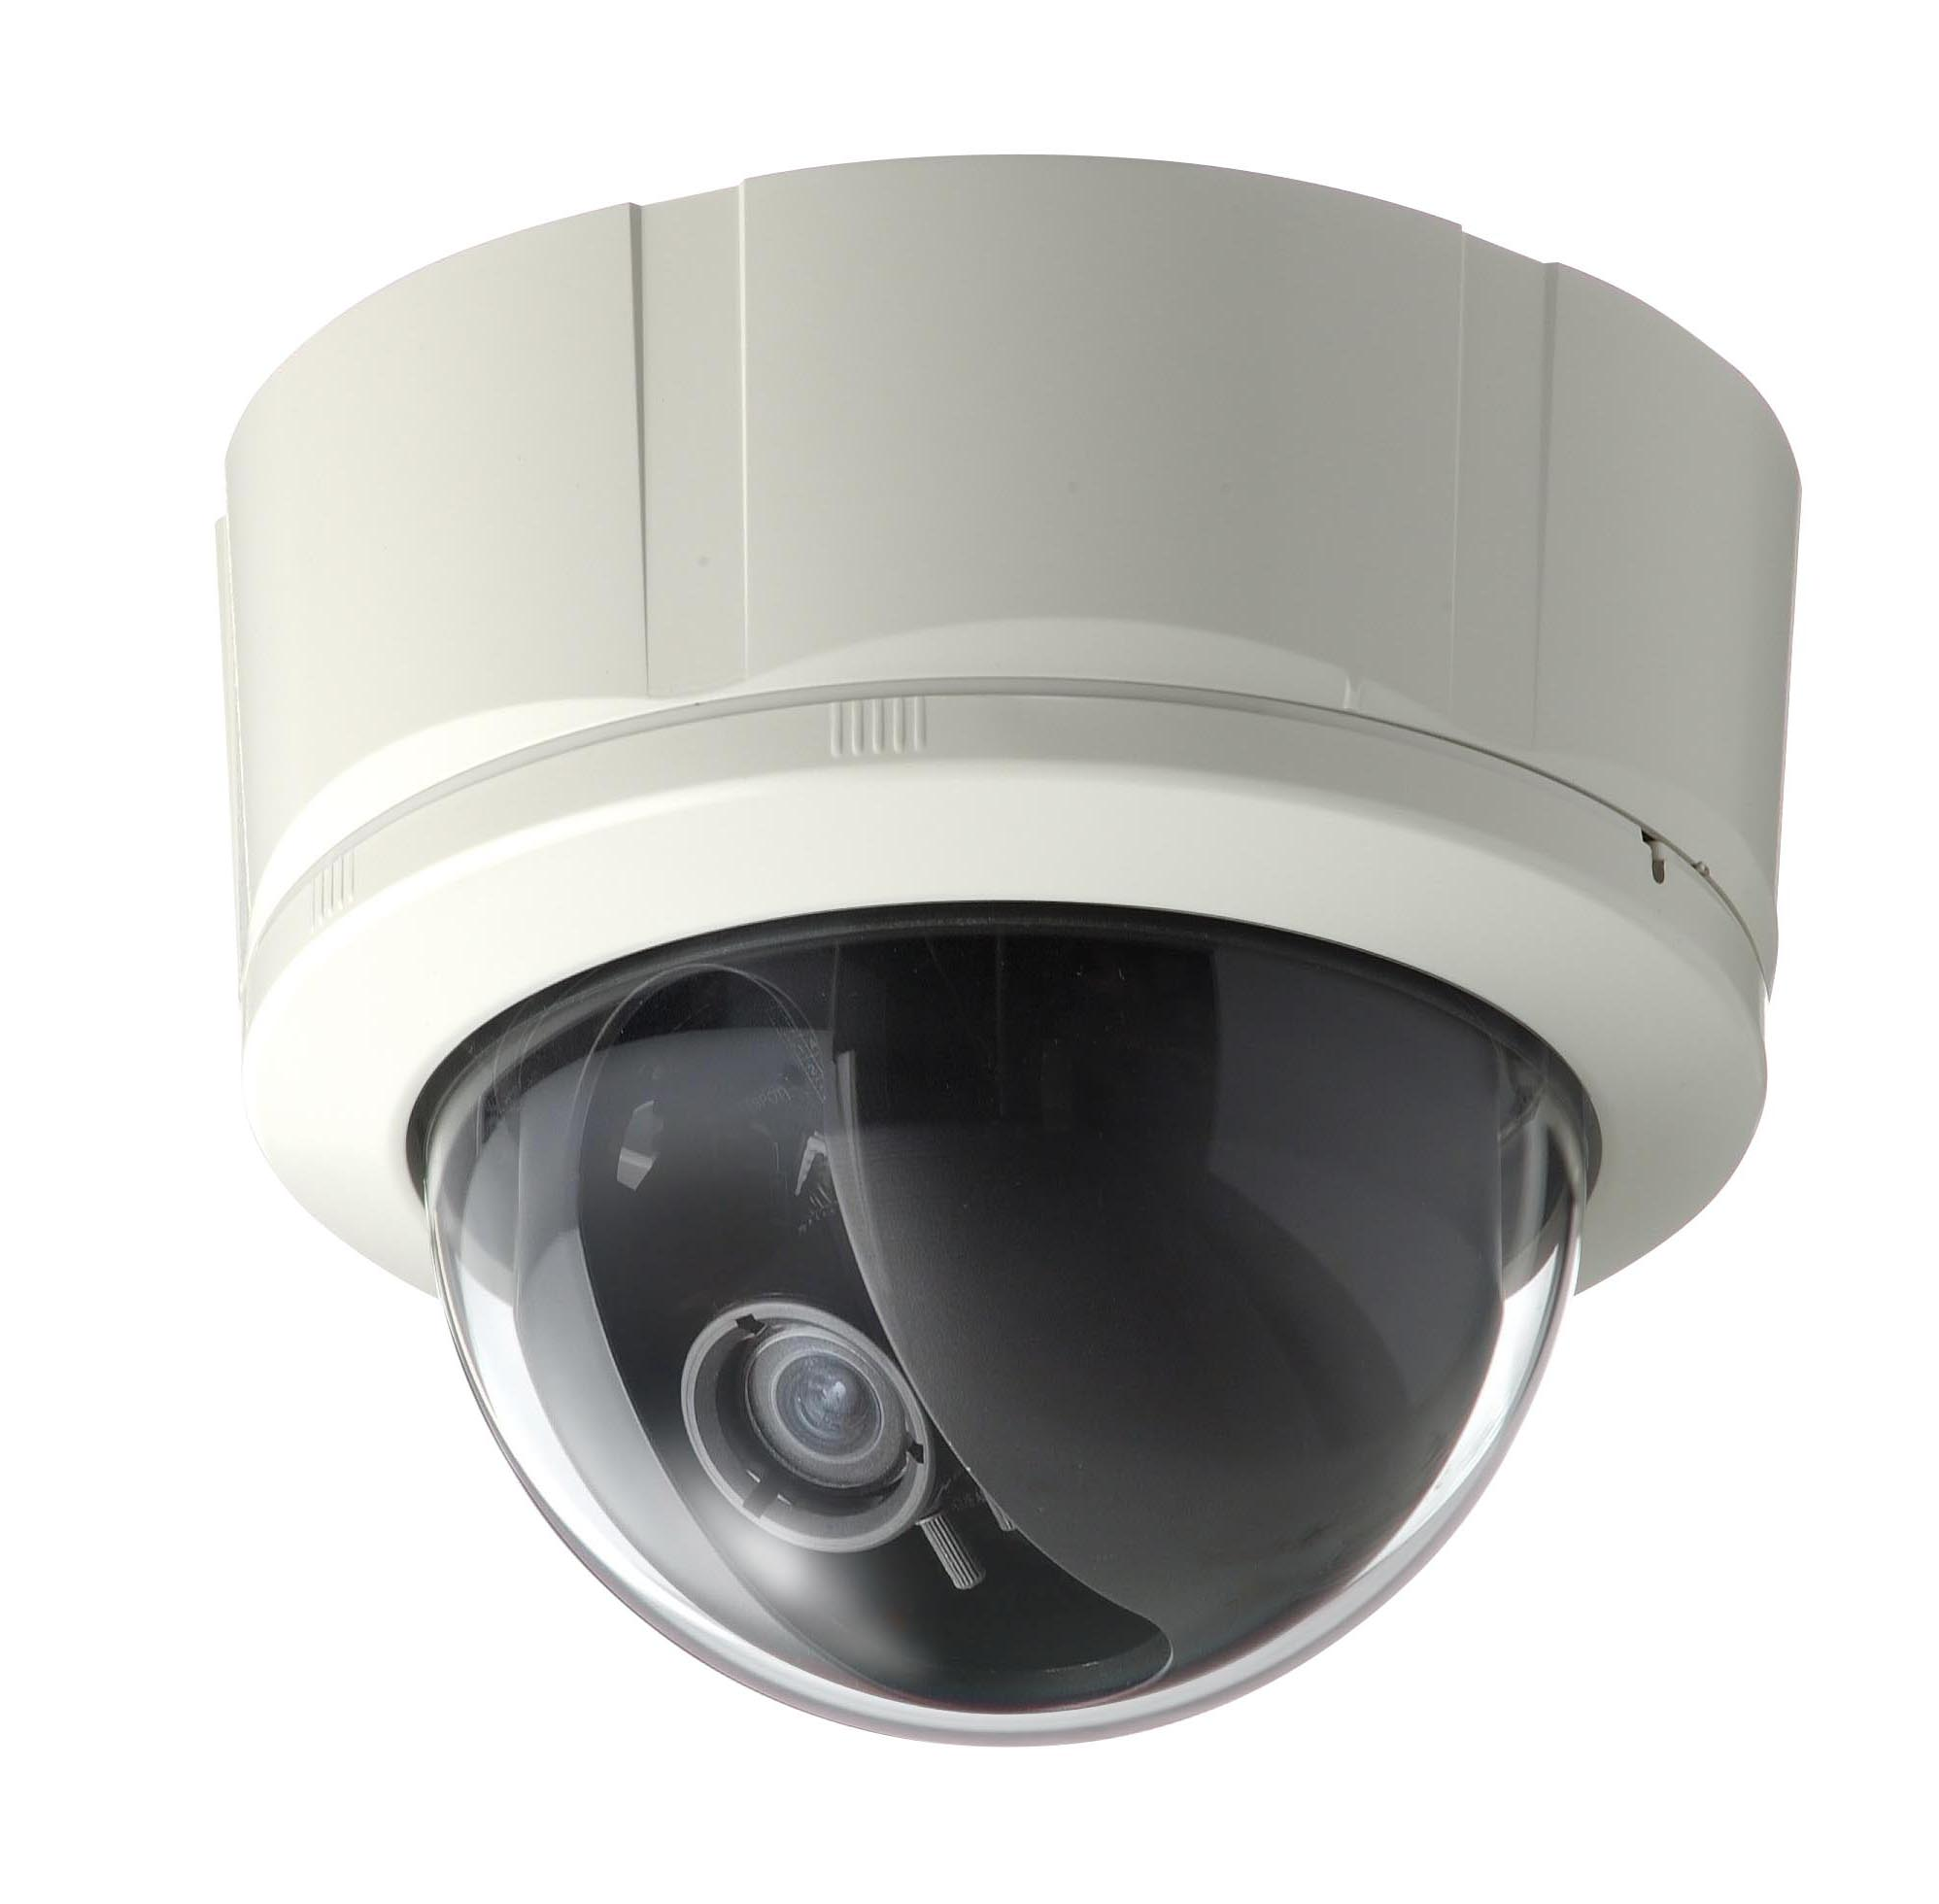 High resolution security cameras both inside and outside (long ranges ...